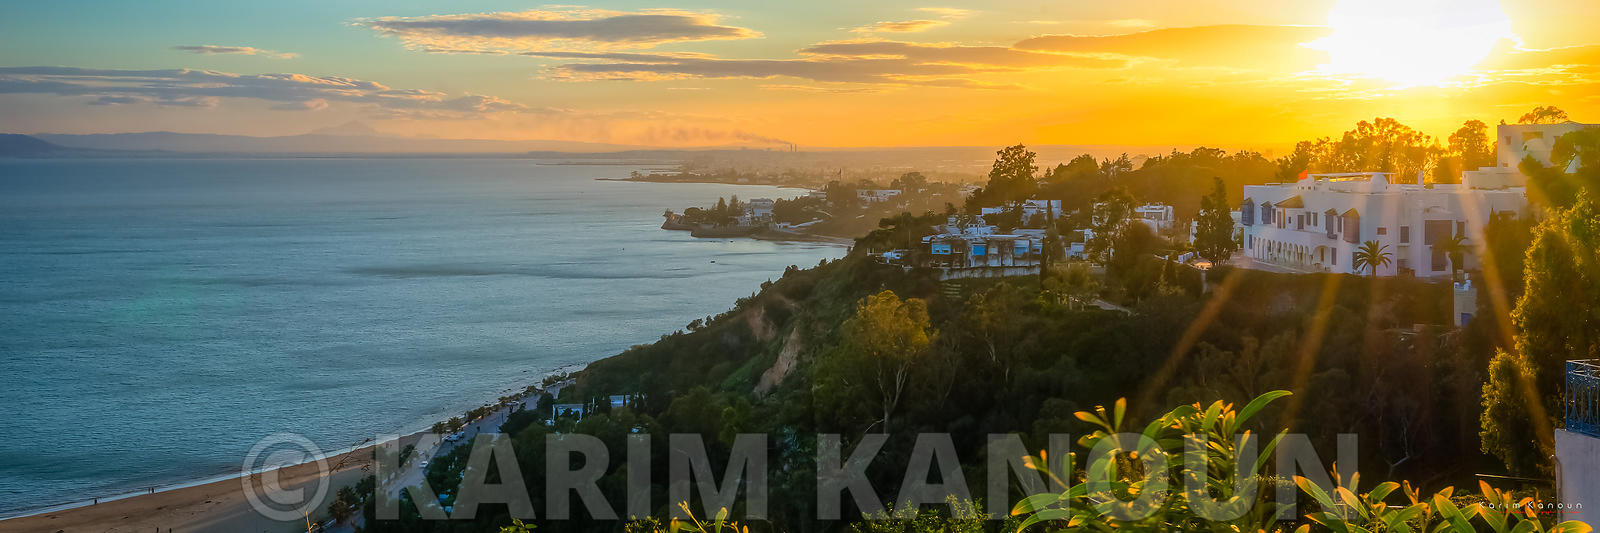 Panorama - View from Sidi Bou Said at sunset time